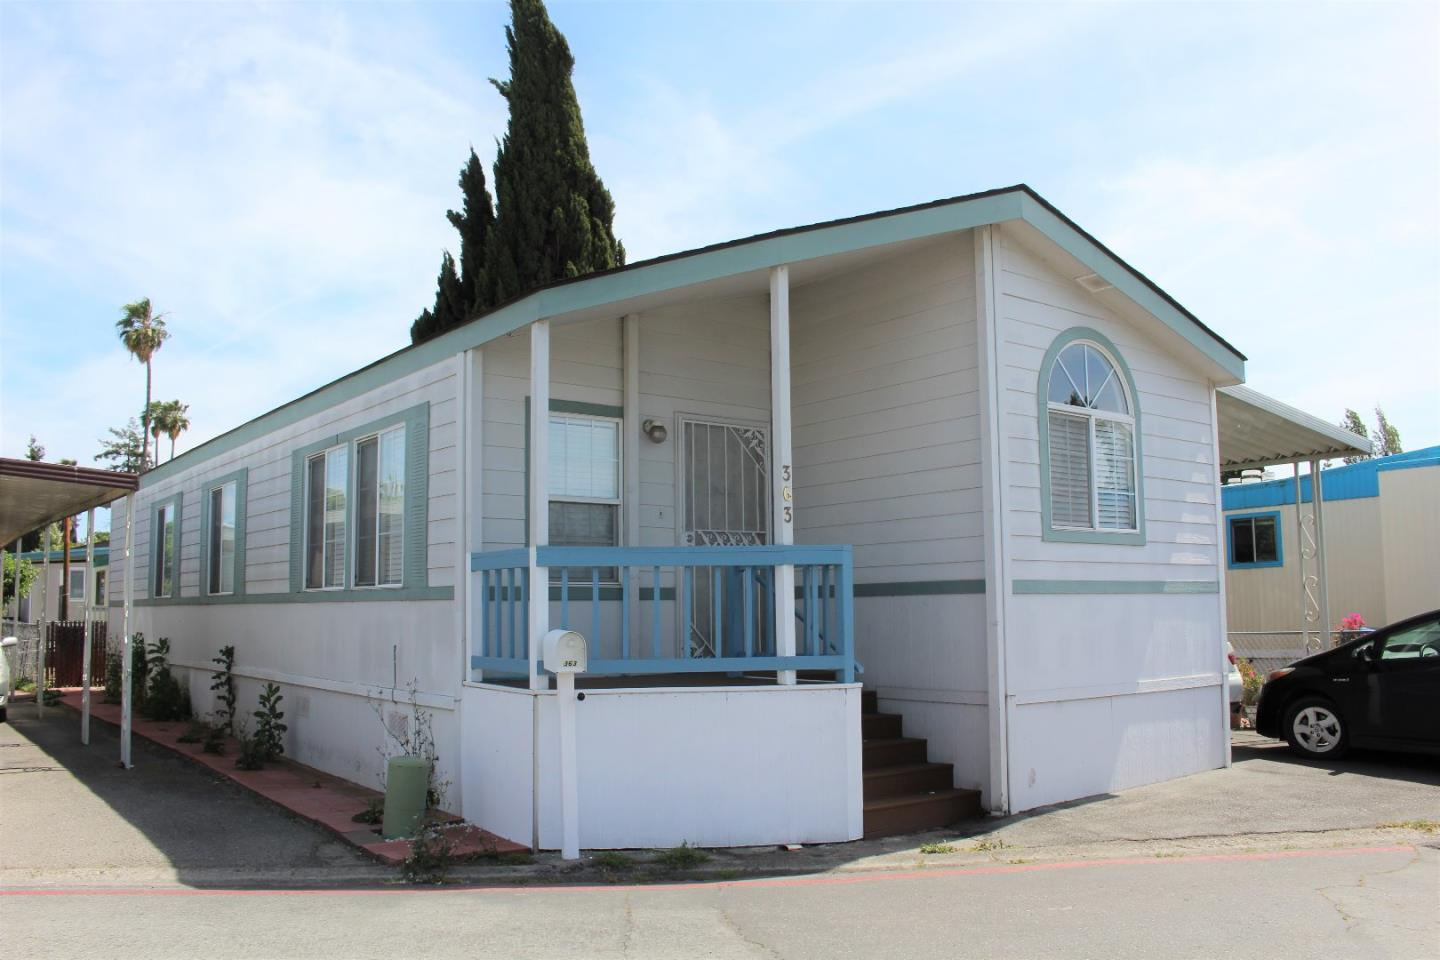 Additional photo for property listing at 411 Lewis Road 411 Lewis Road San Jose, Kalifornien 95111 Vereinigte Staaten